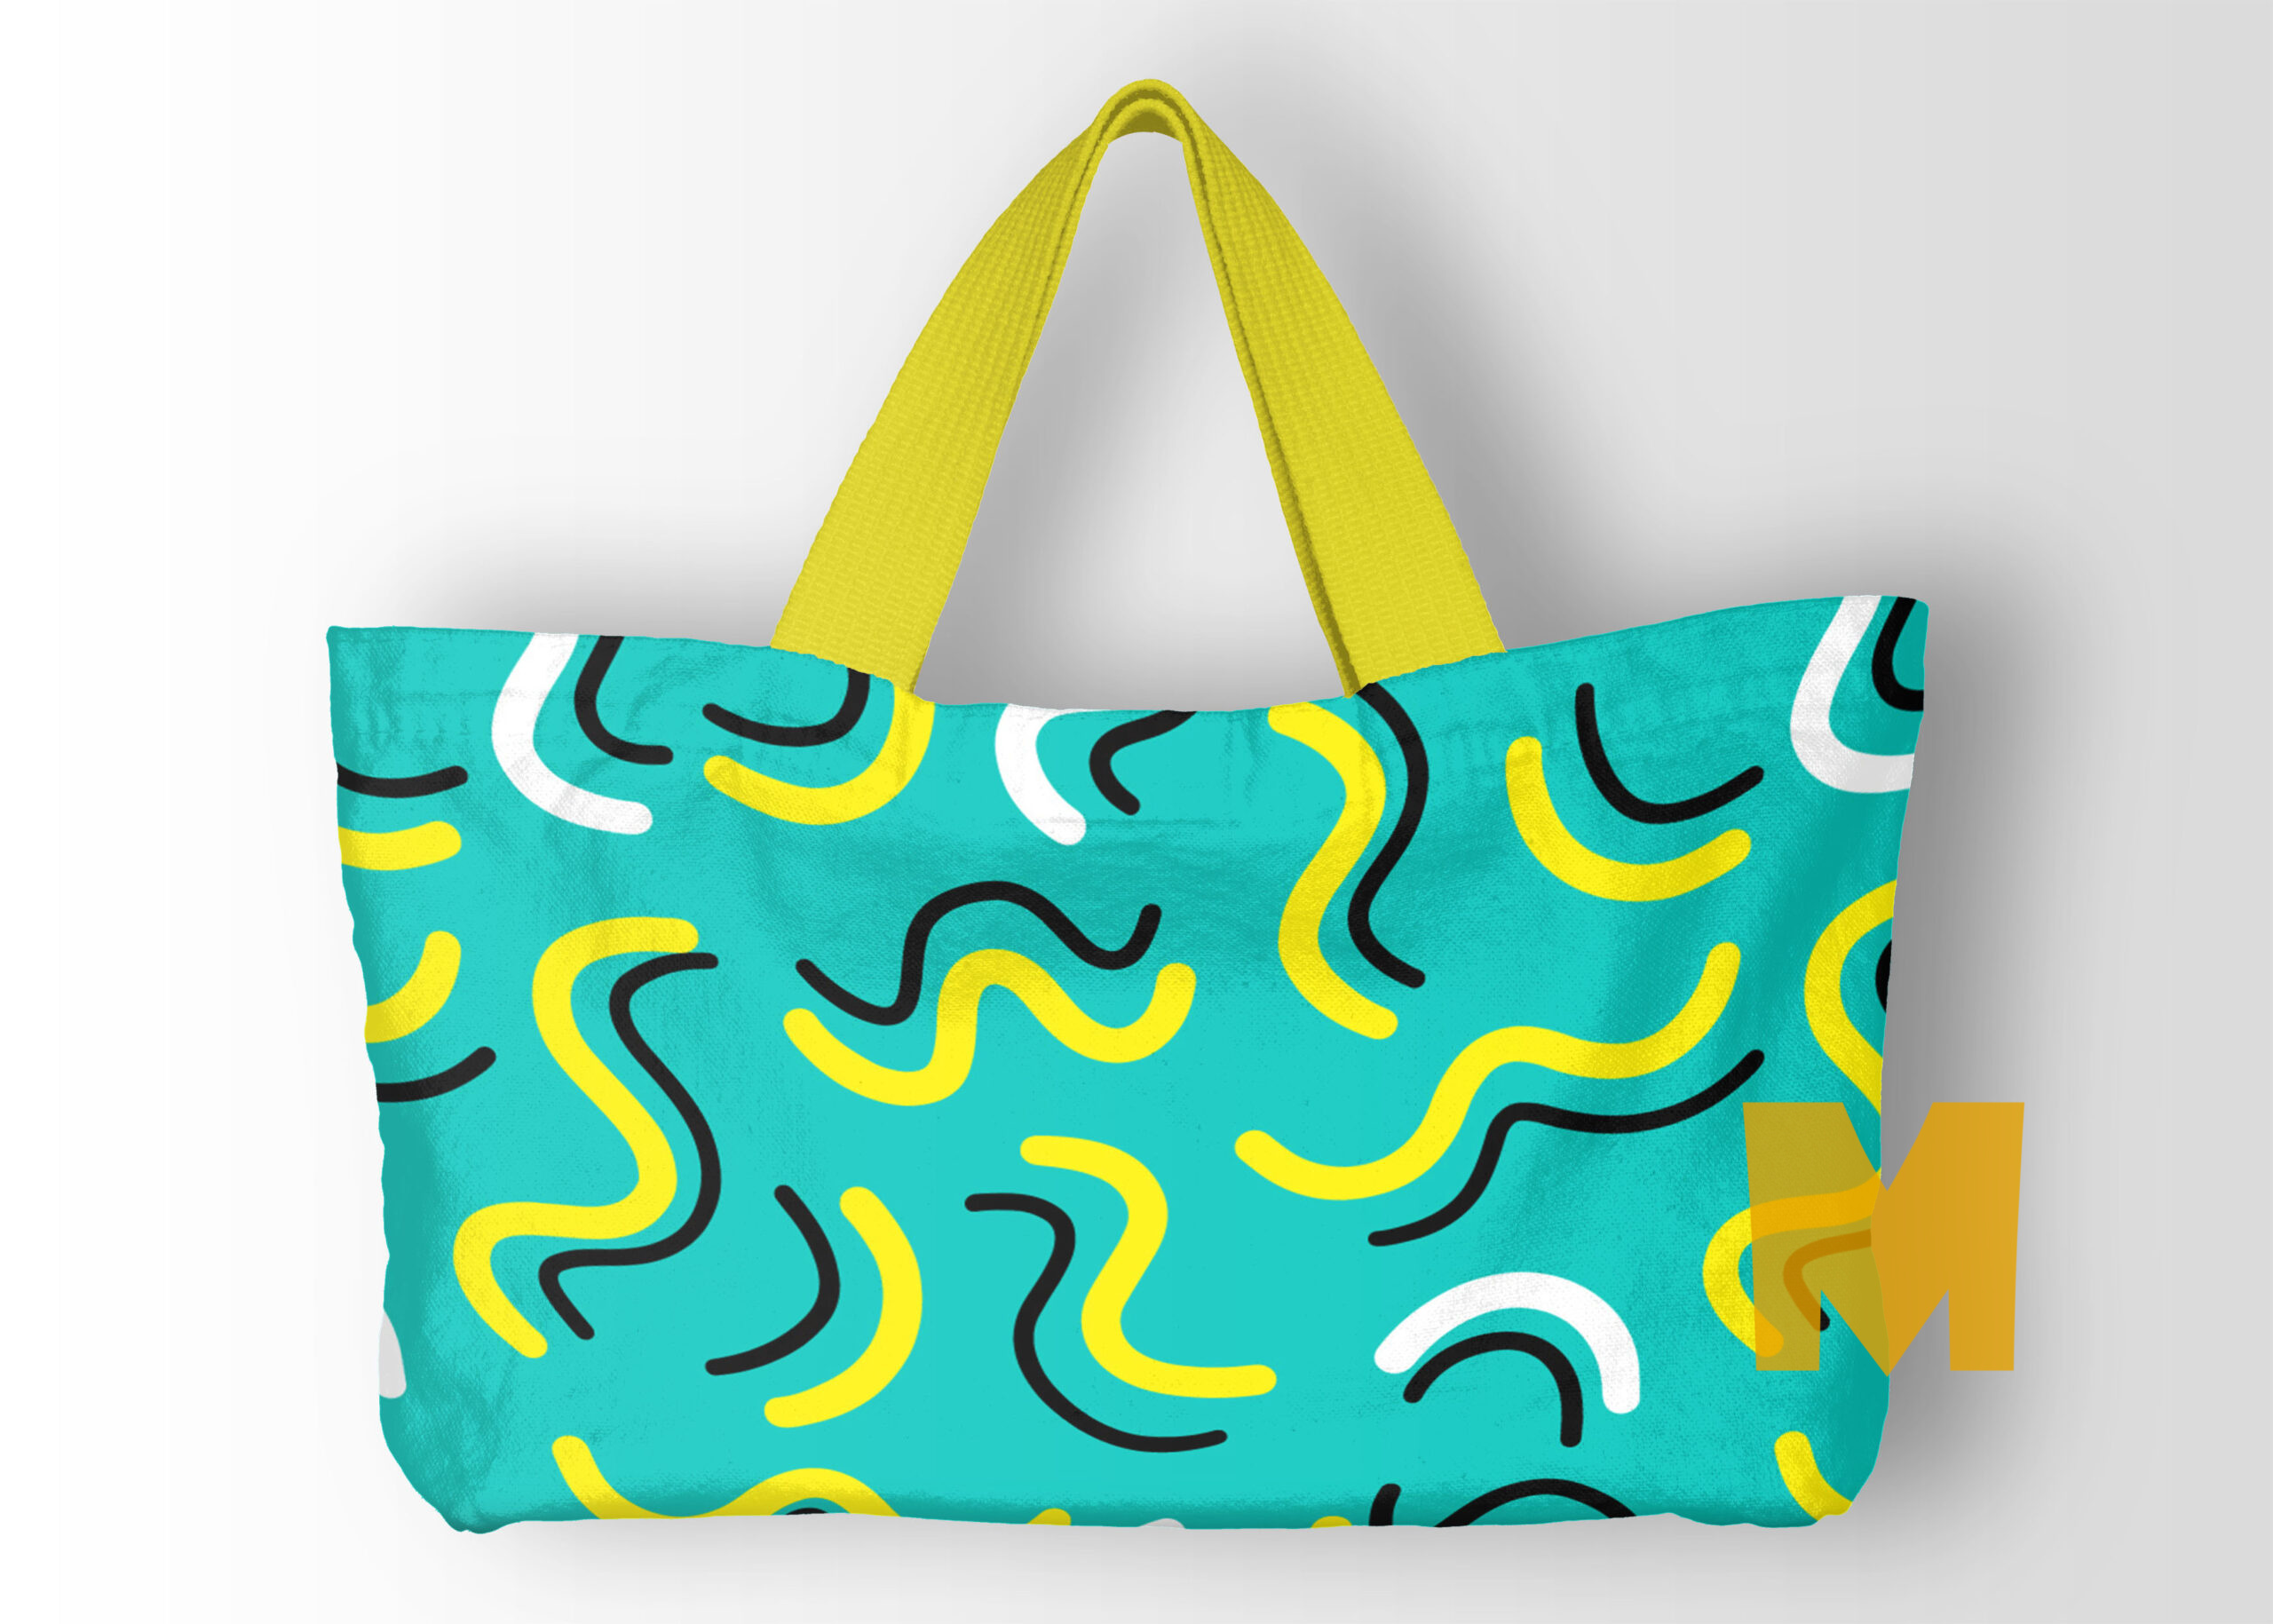 Aunty Canvas Bag Mockup